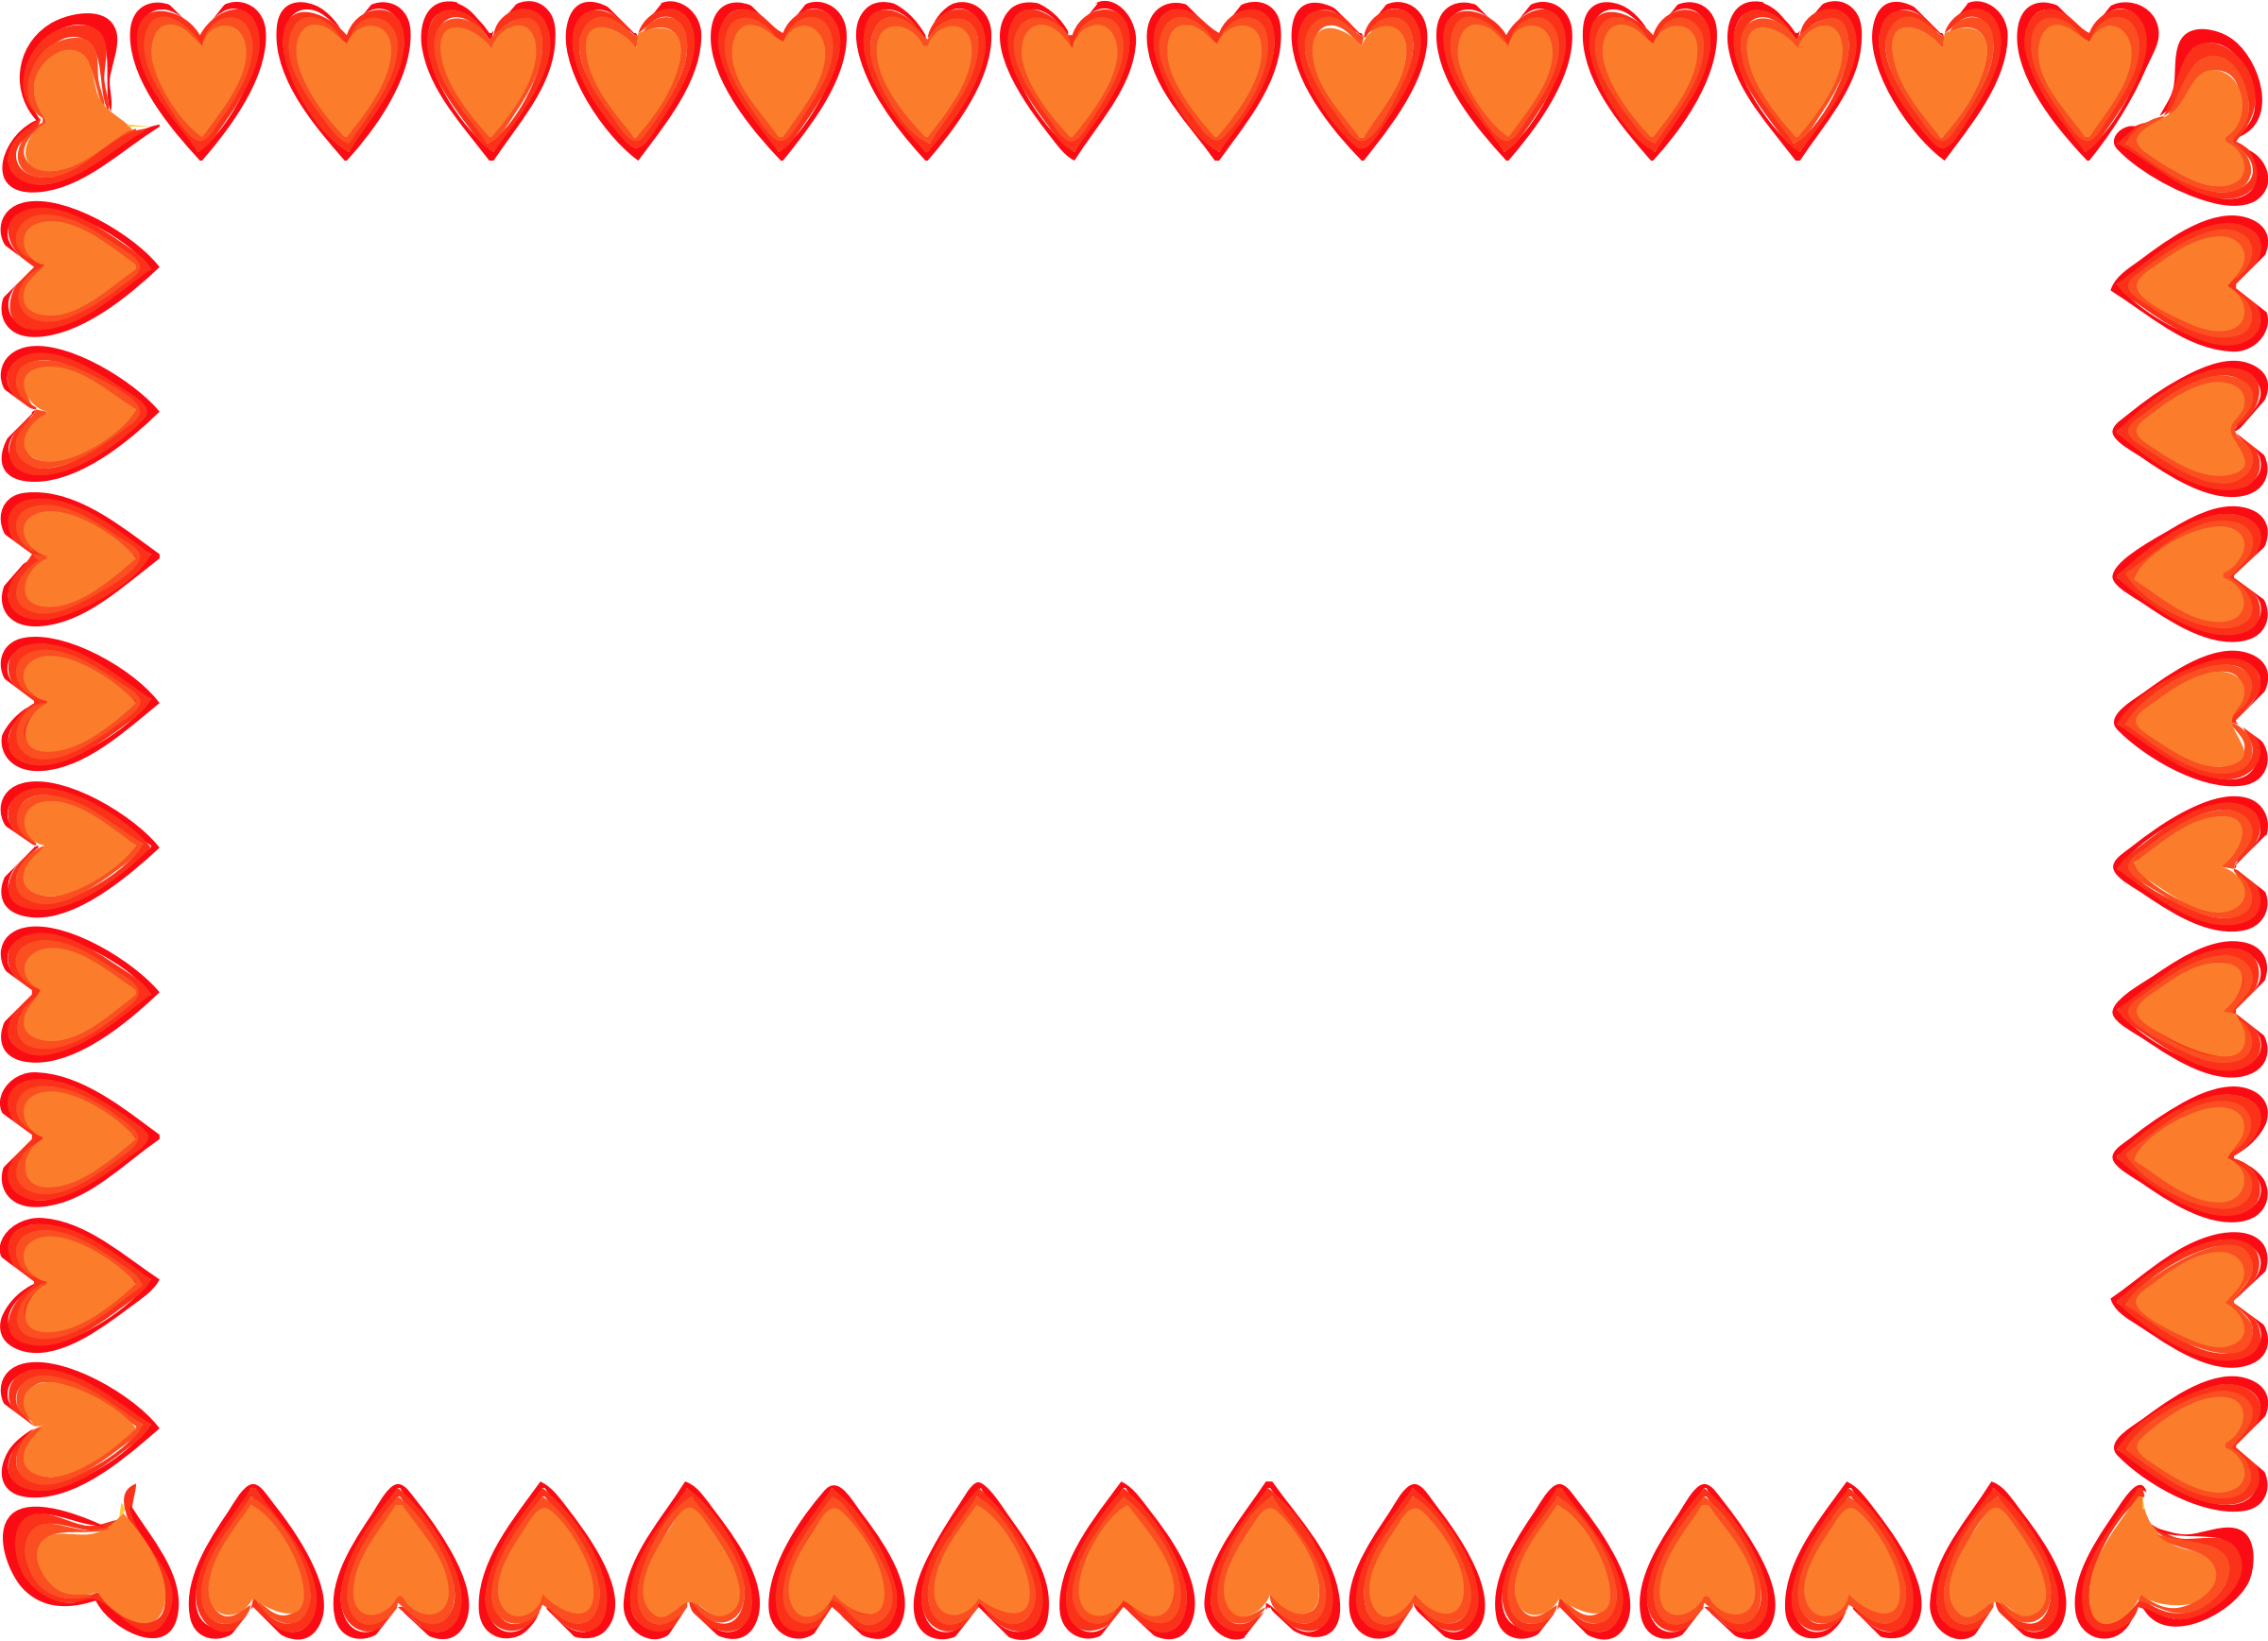 Red Hearts Border by IslandVibz